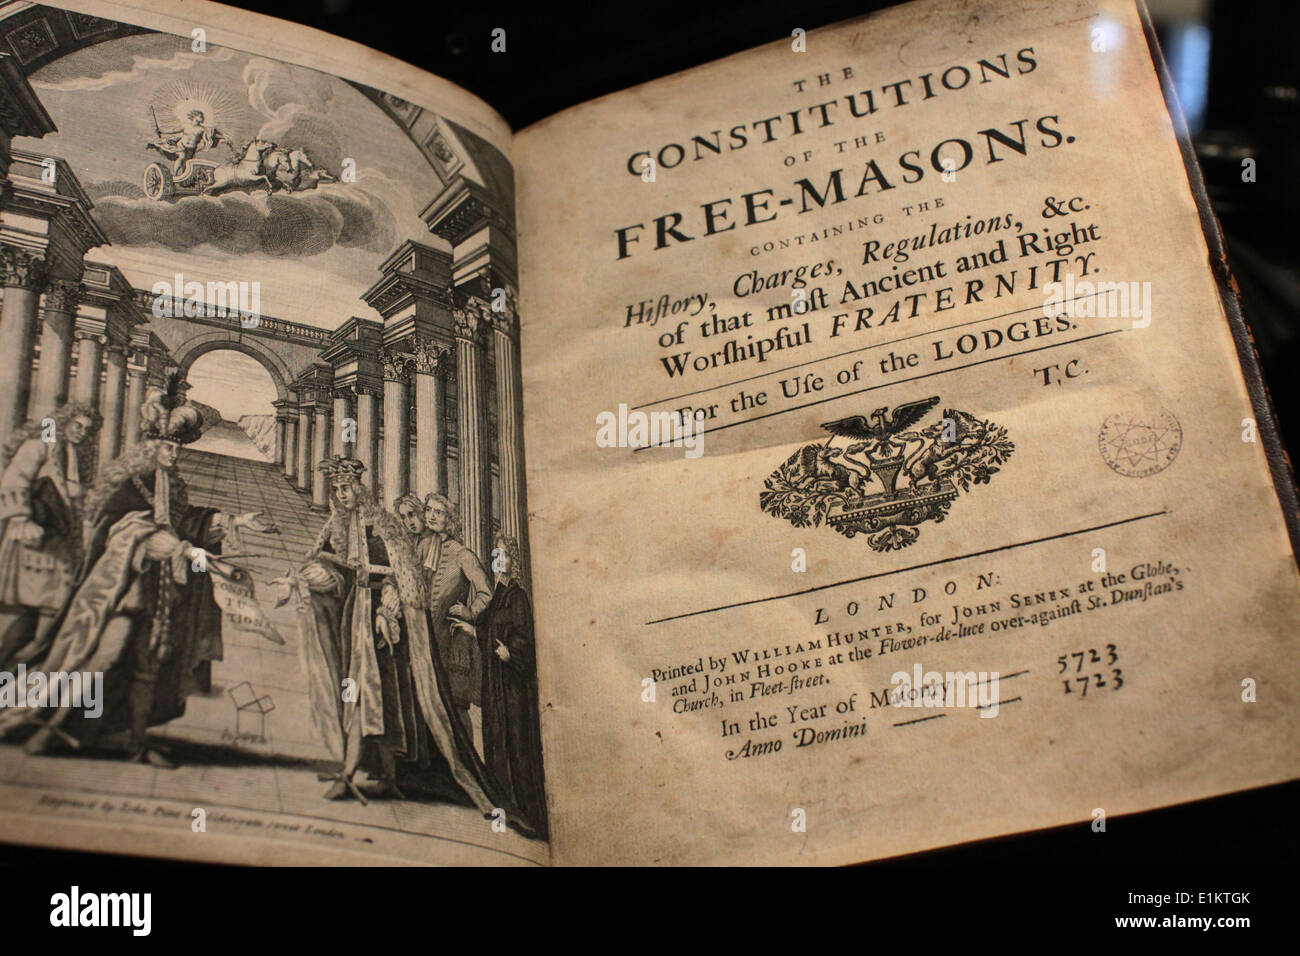 Title Page of the Freemason Constitution.  Freemasons' museum. - Stock Image